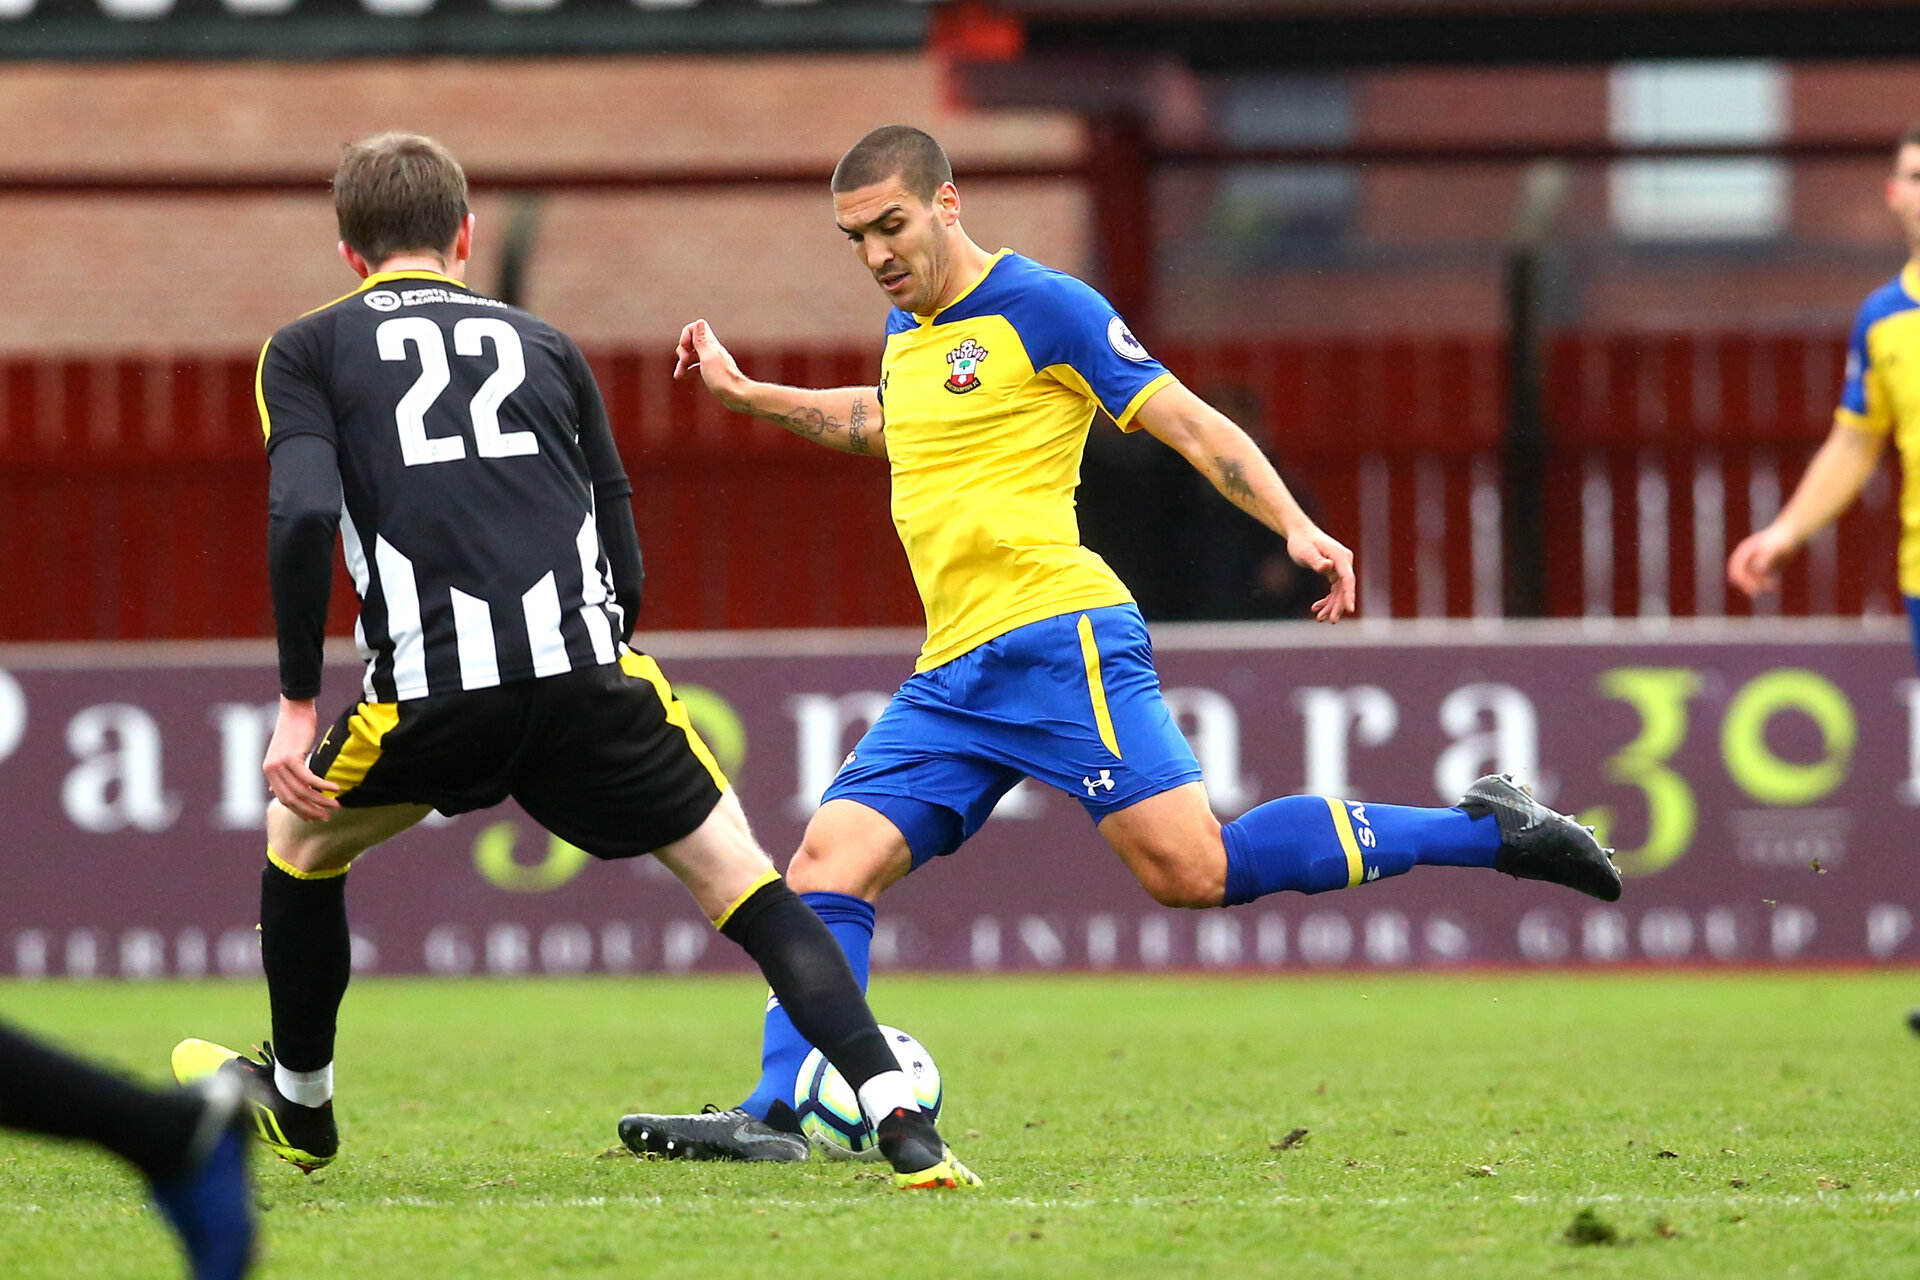 NOTTINGHAM, ENGLAND - NOVEMBER 28: Oriol Romeu during the Cup match between Notts County and Southampton at IIklestone Town FC on November 28, 2018 in Nottingham, England. (Photo by James Bridle - Southampton FC/Southampton FC via Getty Images)